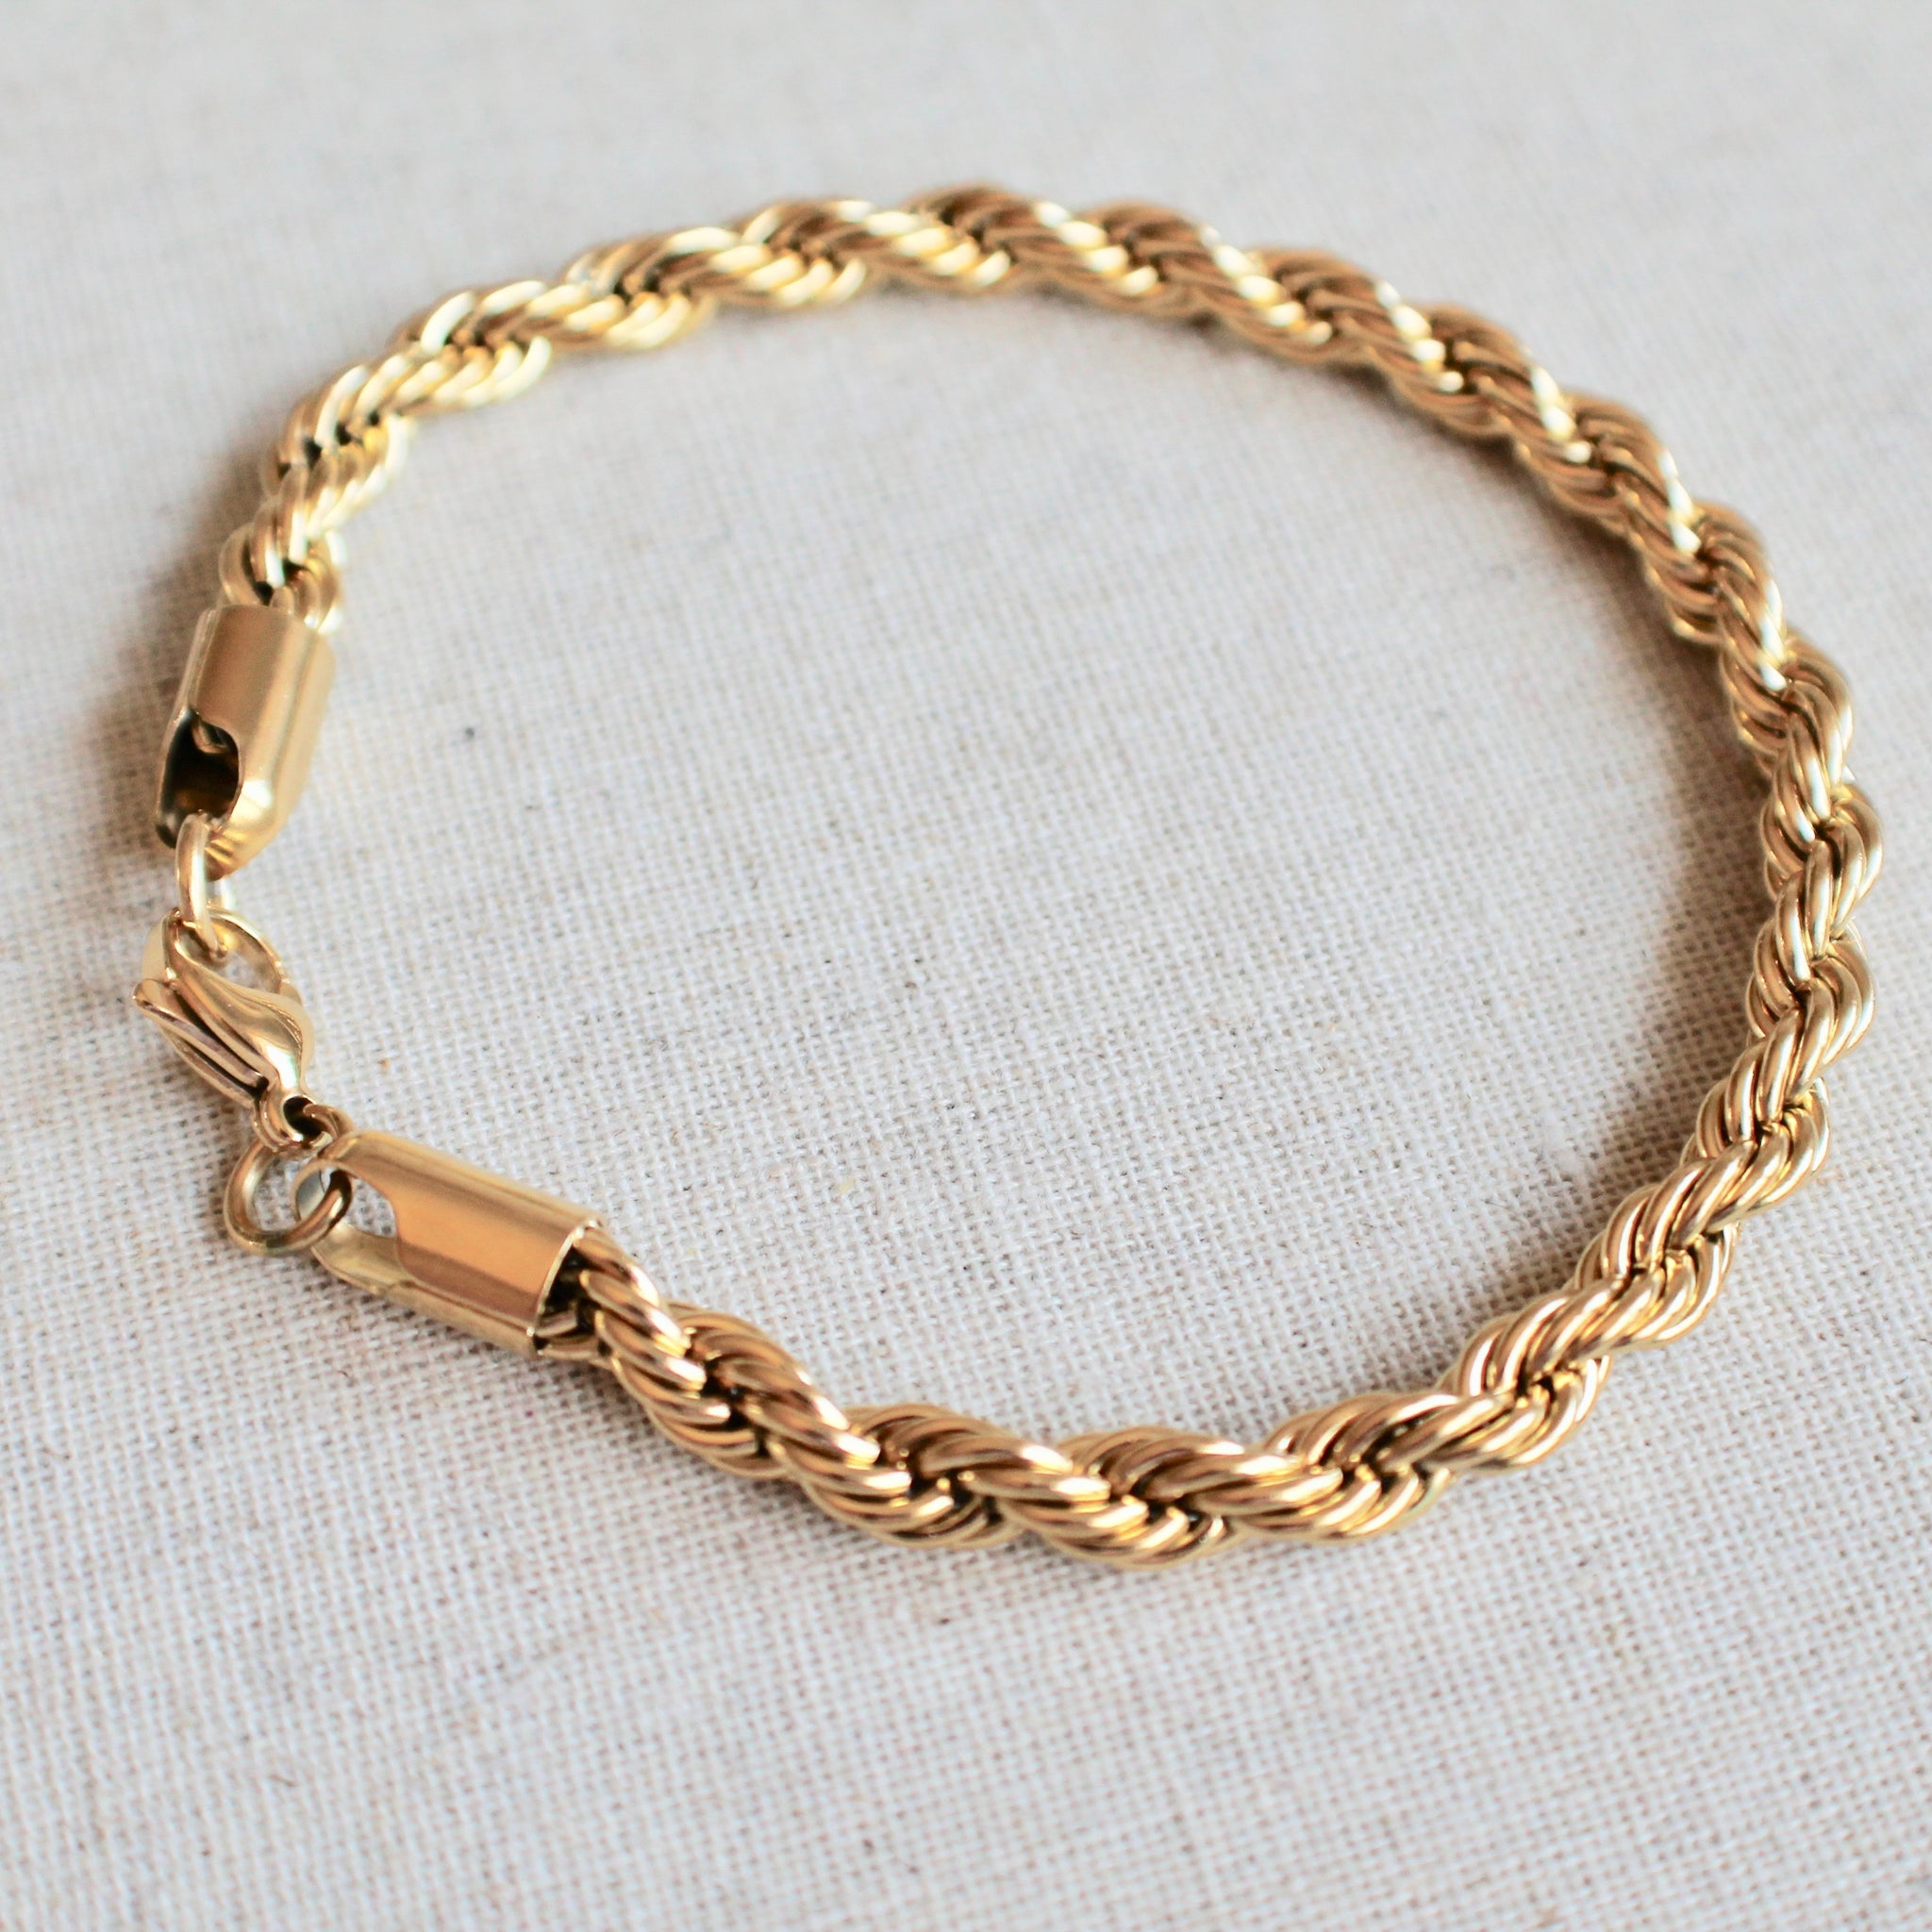 Twisted gold chain bracelet - Lily Lough Jewelry